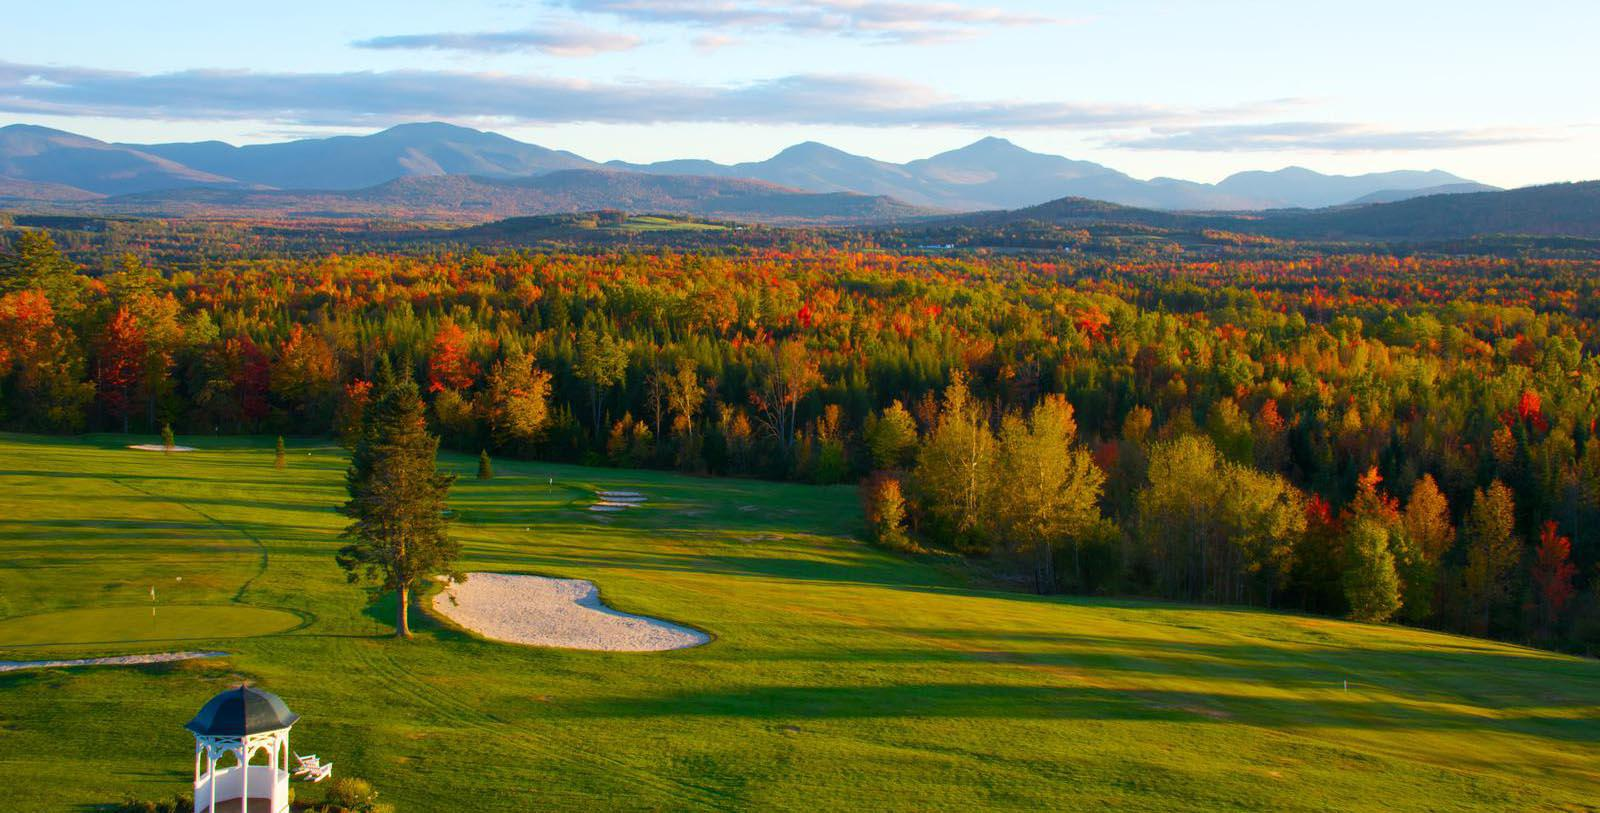 Image of Golf Course & Autumn Landscape, Mountain View Grand Resort & Spa in Whitefield, New Hampshire, 1865, Member of Historic Hotels of America, Hot Deals